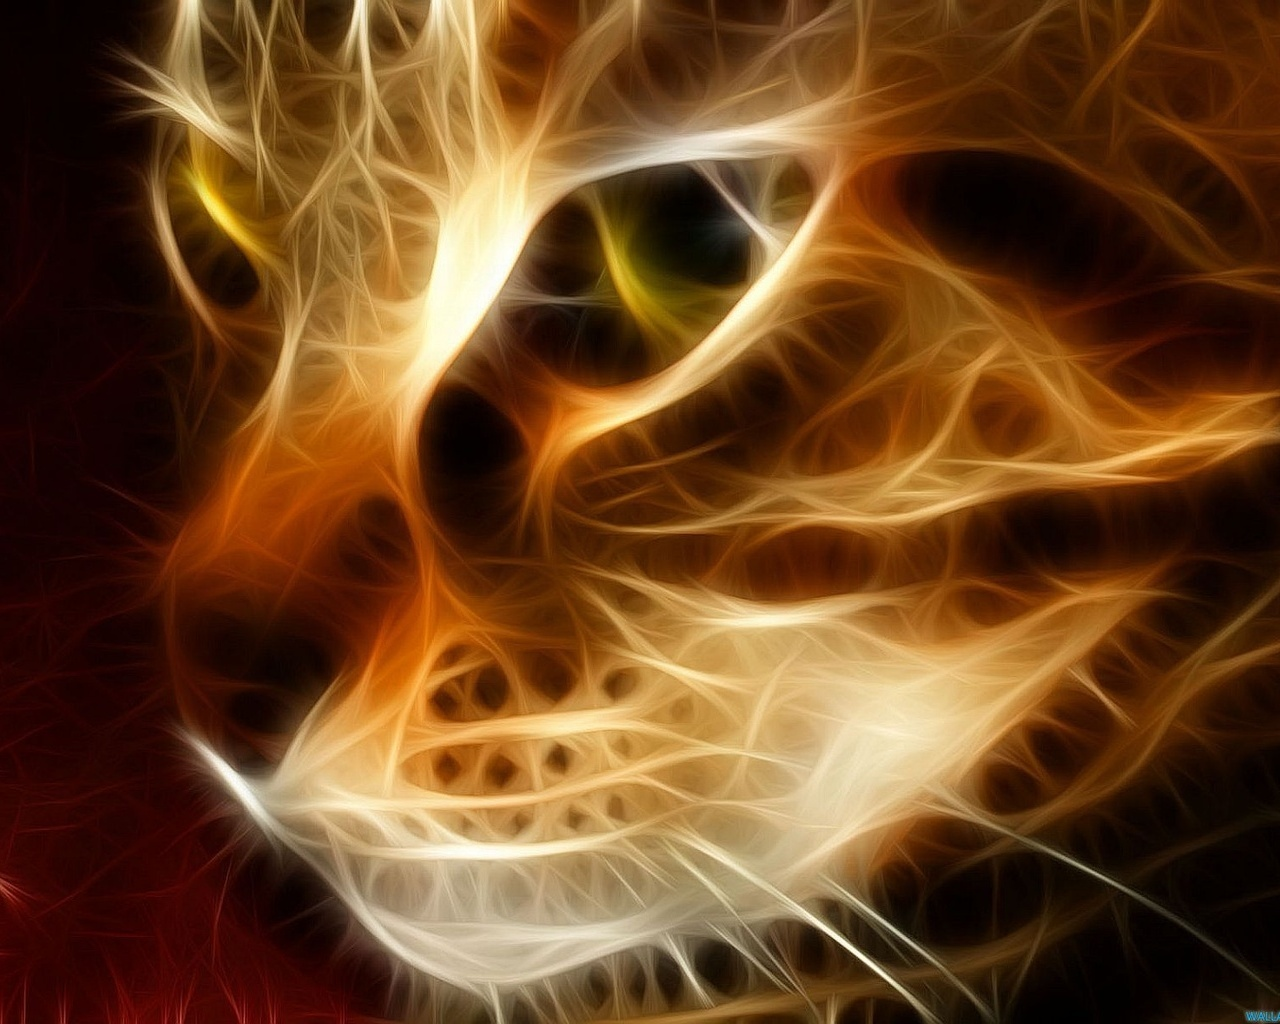 Pictures 3d graphics Cat Desktop Wallpapers and Pictures wallpapers 1280x1024